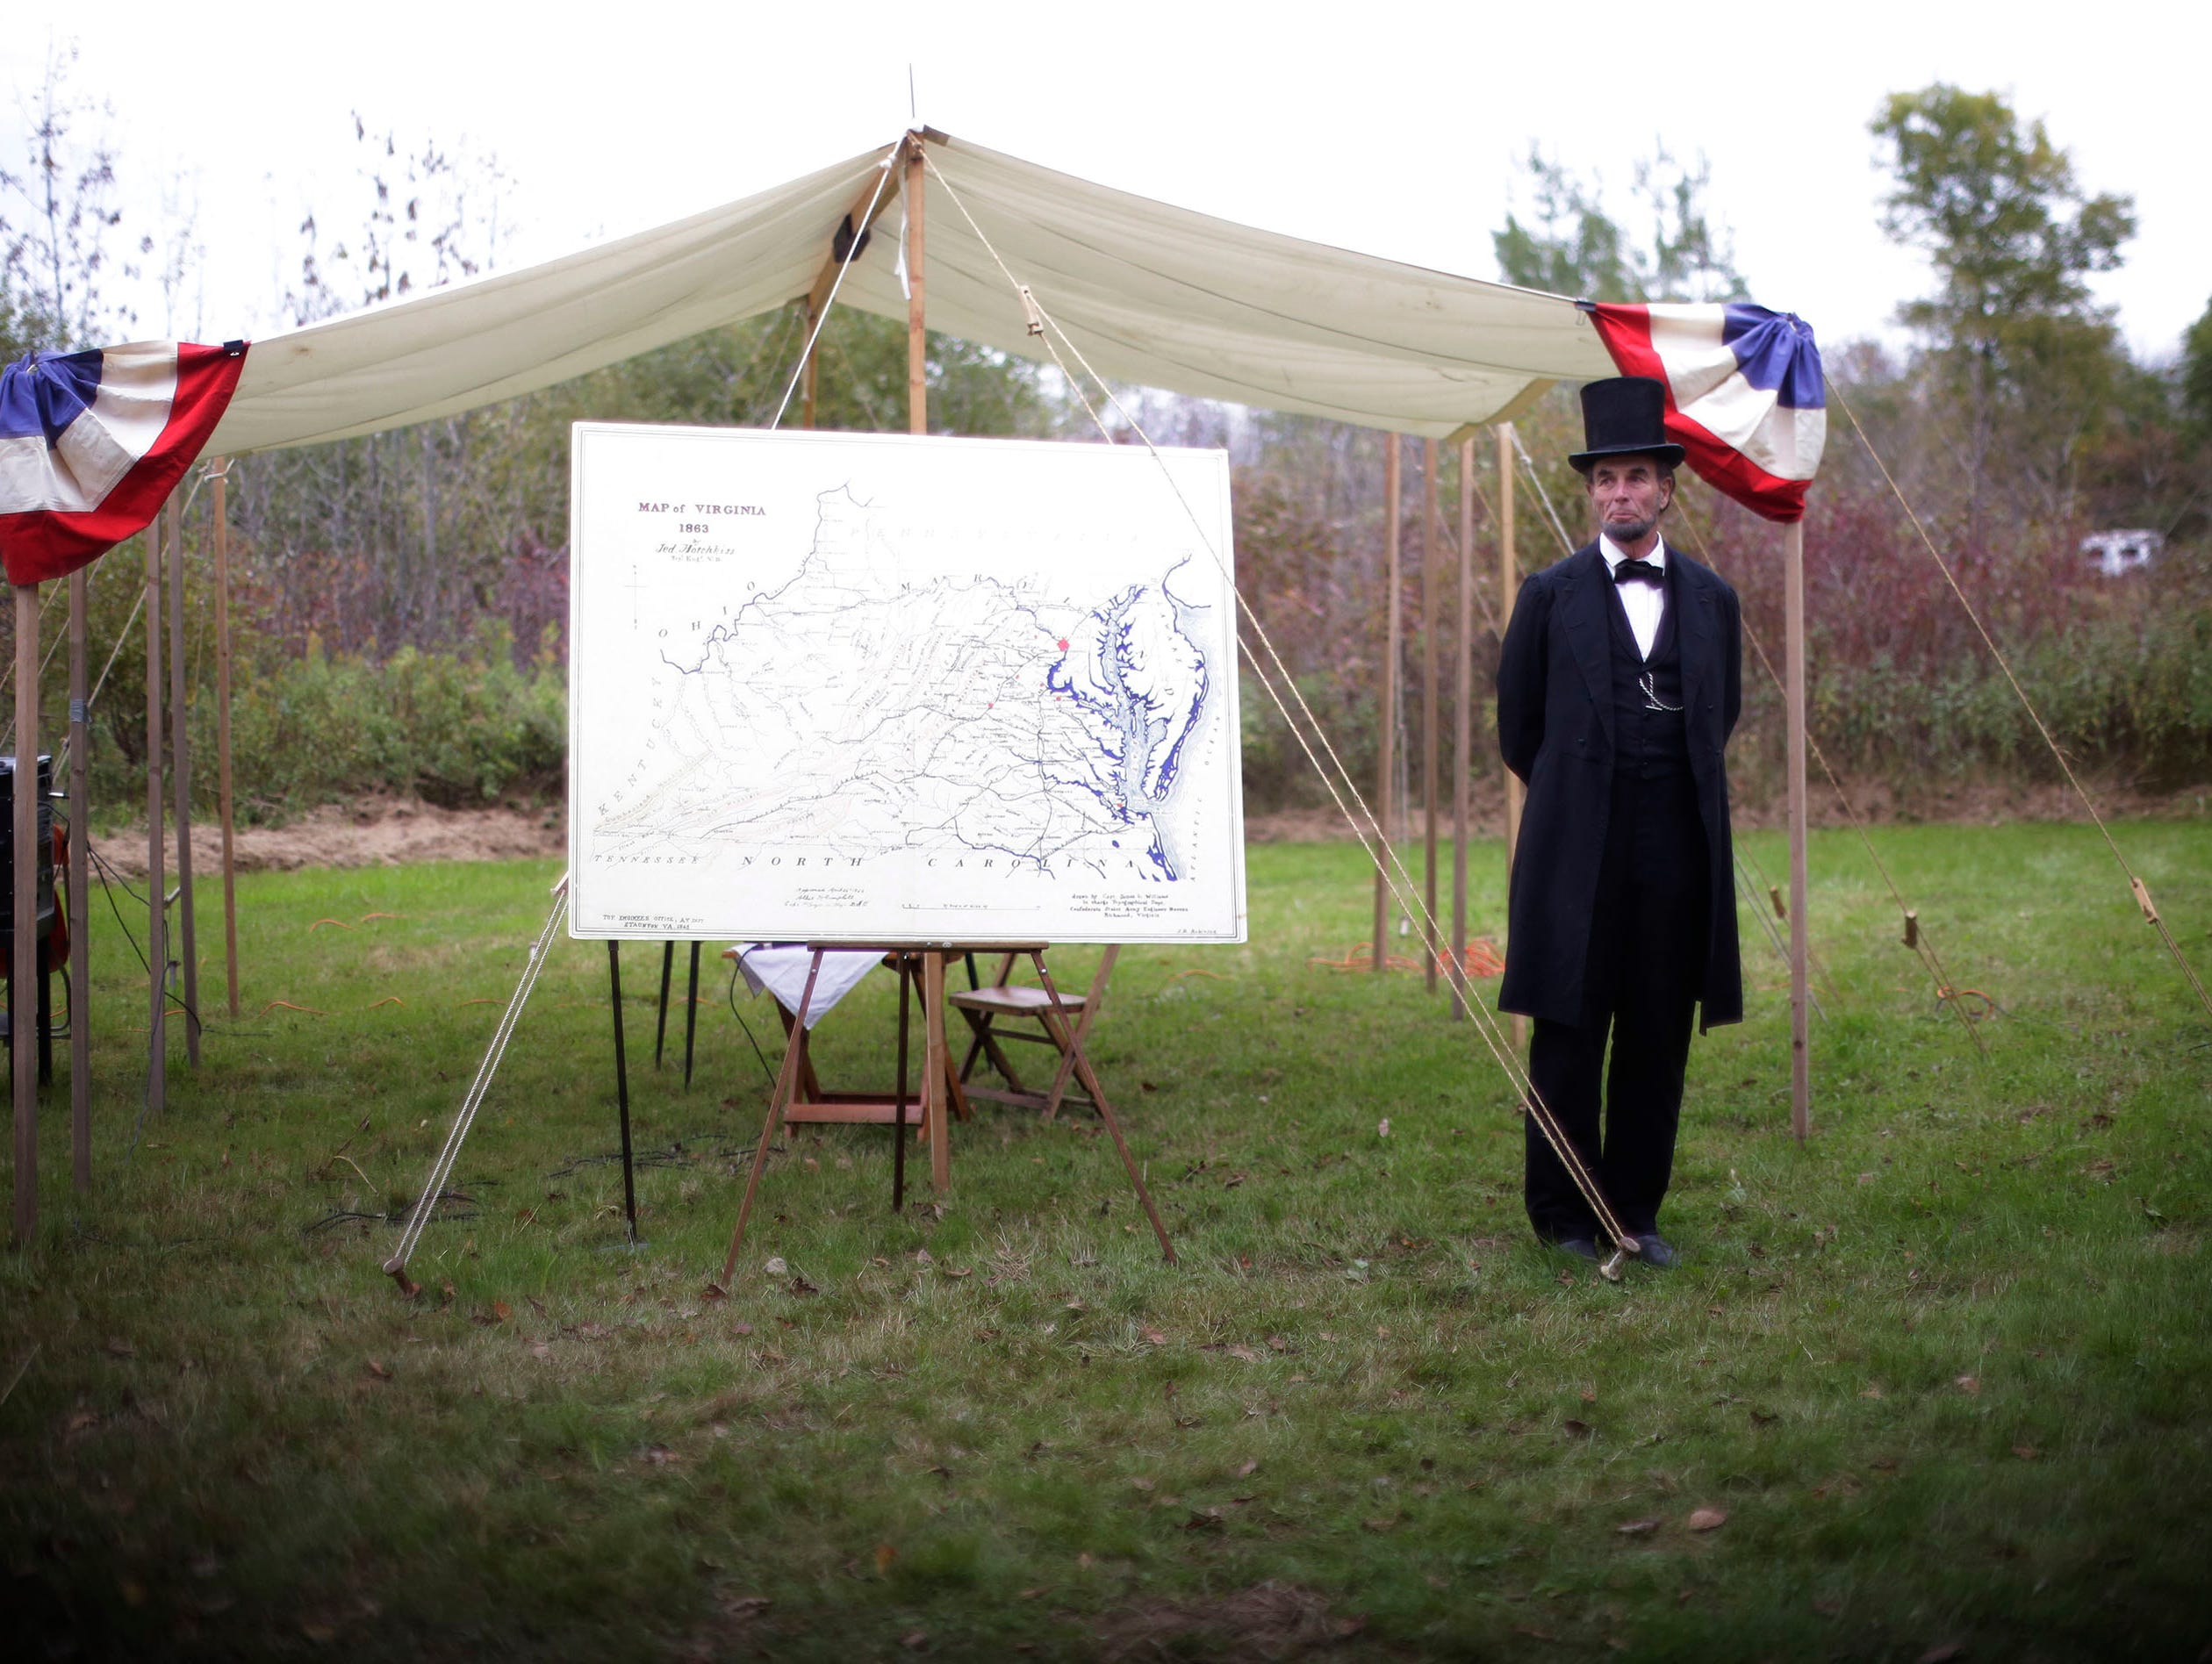 Abraham Lincoln reenactor Fritz Klein stands before starting his talk on Civil War history, Saturday September 29, 2018, in Greenbush, Wis.